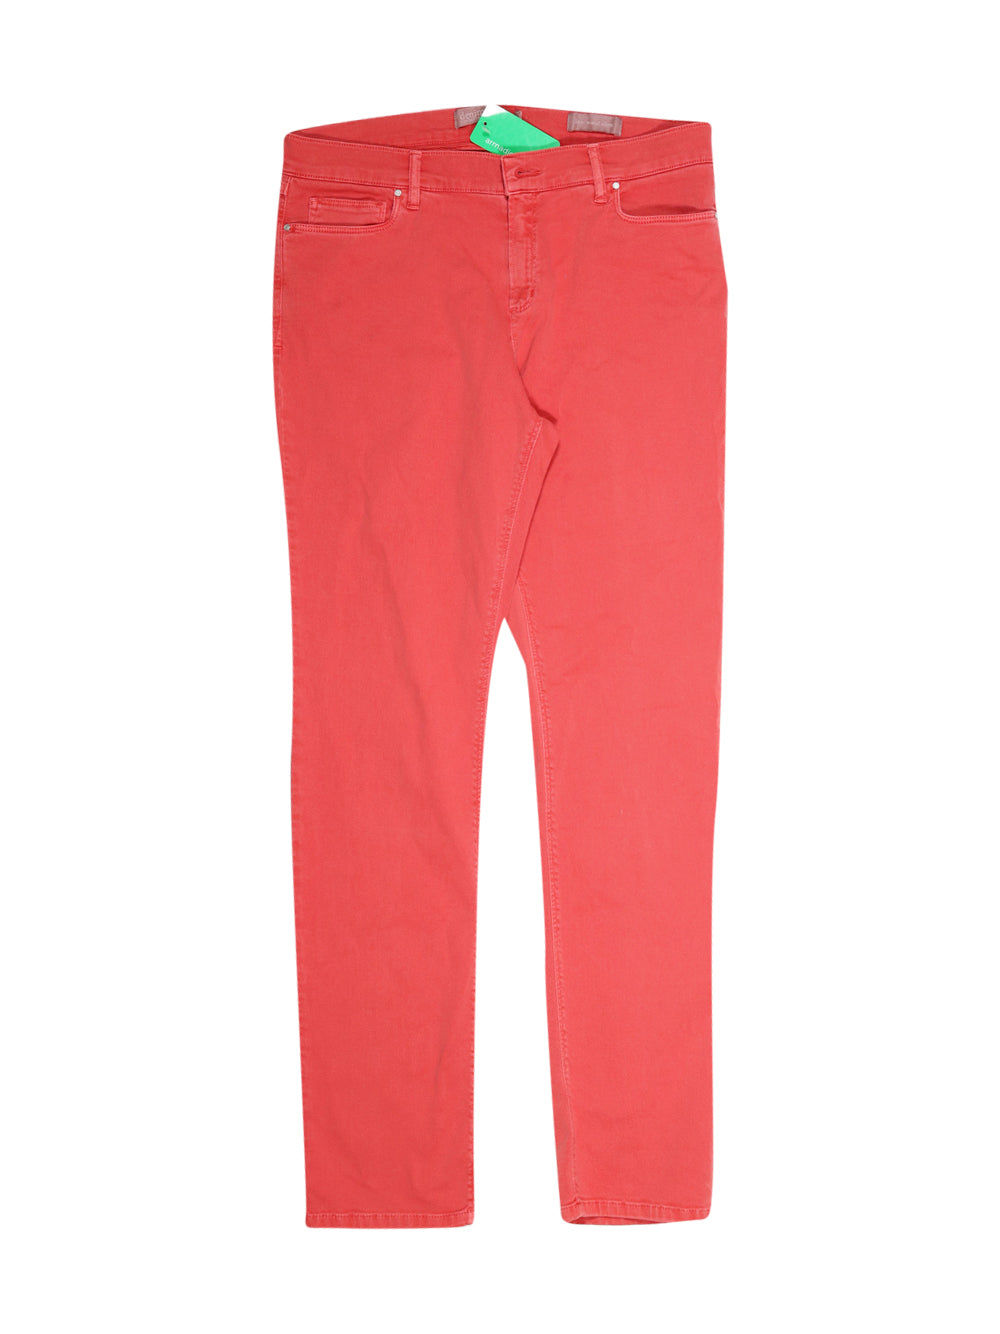 Front photo of Preloved marinasport Red Man's trousers - size 38/M